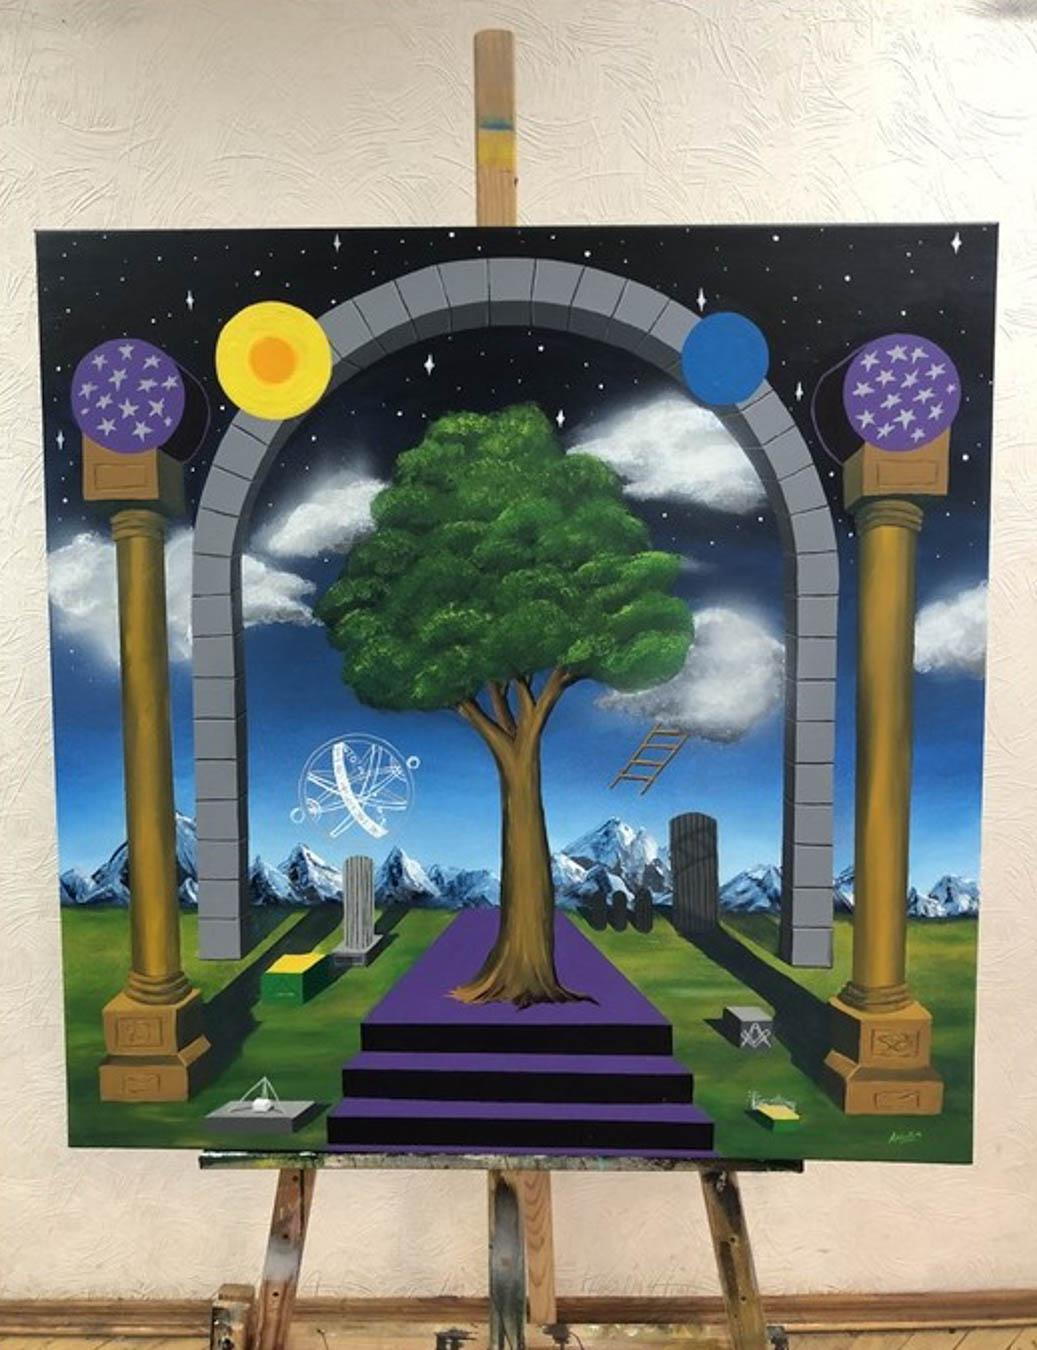 Surreal image of a tree surrounded by columns, an arch and other symbols. Night sky filled with stars and clouds can be seen in the background.